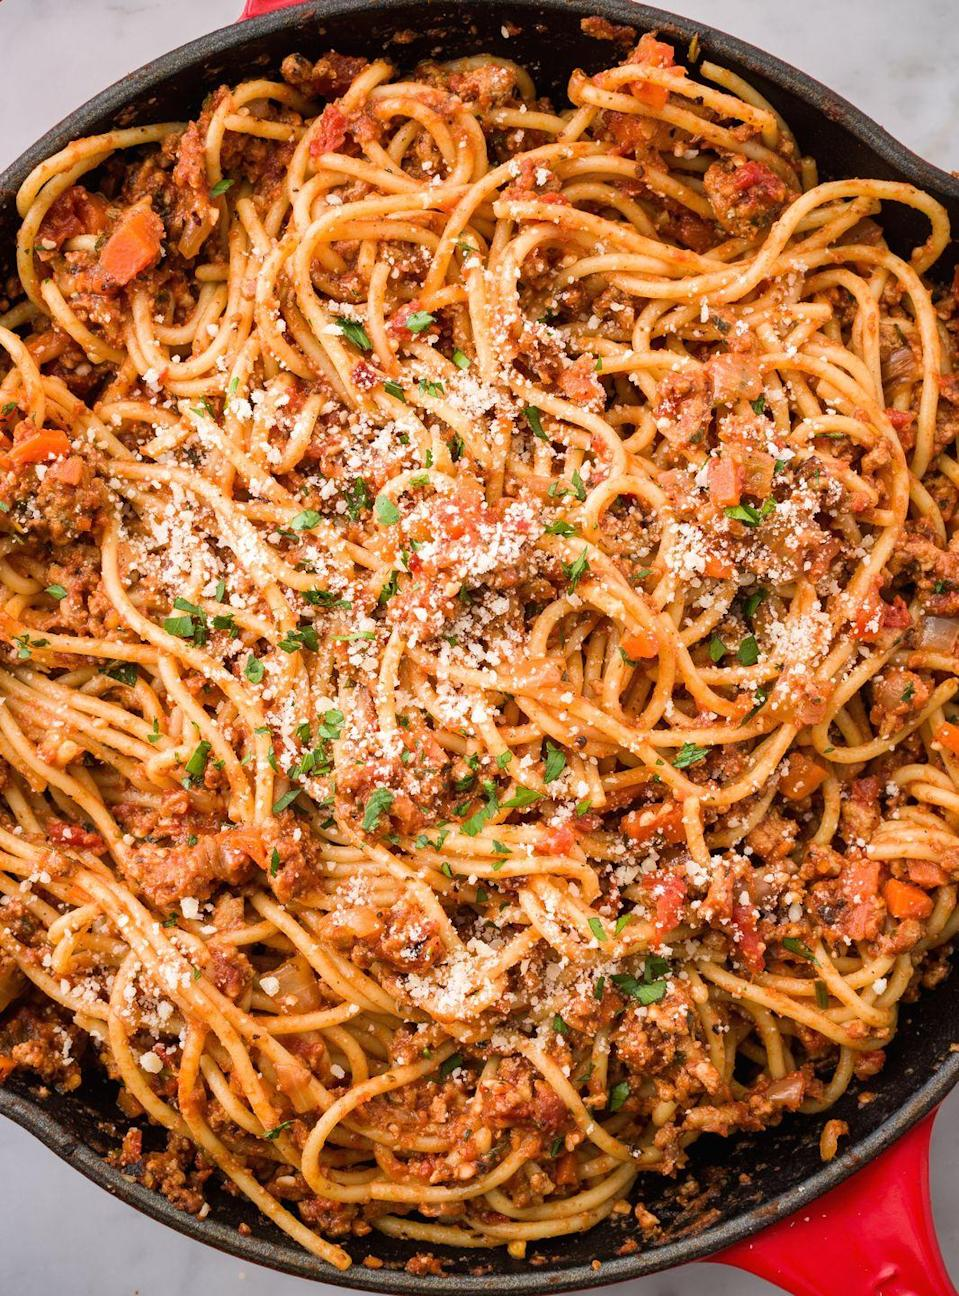 """<p>You know you just want to dig your fork in there and twirl it.</p><p>Get the recipe from <a href=""""https://www.redbookmag.com/cooking/recipe-ideas/recipes/a45776/spaghetti-with-turkey-ragu-recipe/"""" rel=""""nofollow noopener"""" target=""""_blank"""" data-ylk=""""slk:Delish"""" class=""""link rapid-noclick-resp"""">Delish</a>.</p><p><strong><a class=""""link rapid-noclick-resp"""" href=""""https://www.amazon.com/Creuset-Signature-Handle-Skillet-4-Inch/dp/B00B4UOTBQ/?tag=syn-yahoo-20&ascsubtag=%5Bartid%7C10063.g.34933194%5Bsrc%7Cyahoo-us"""" rel=""""nofollow noopener"""" target=""""_blank"""" data-ylk=""""slk:BUY NOW"""">BUY NOW</a><em> Le Creuset Cast-Iron 12"""" Skillet, $200, amazon.com</em></strong><br></p>"""